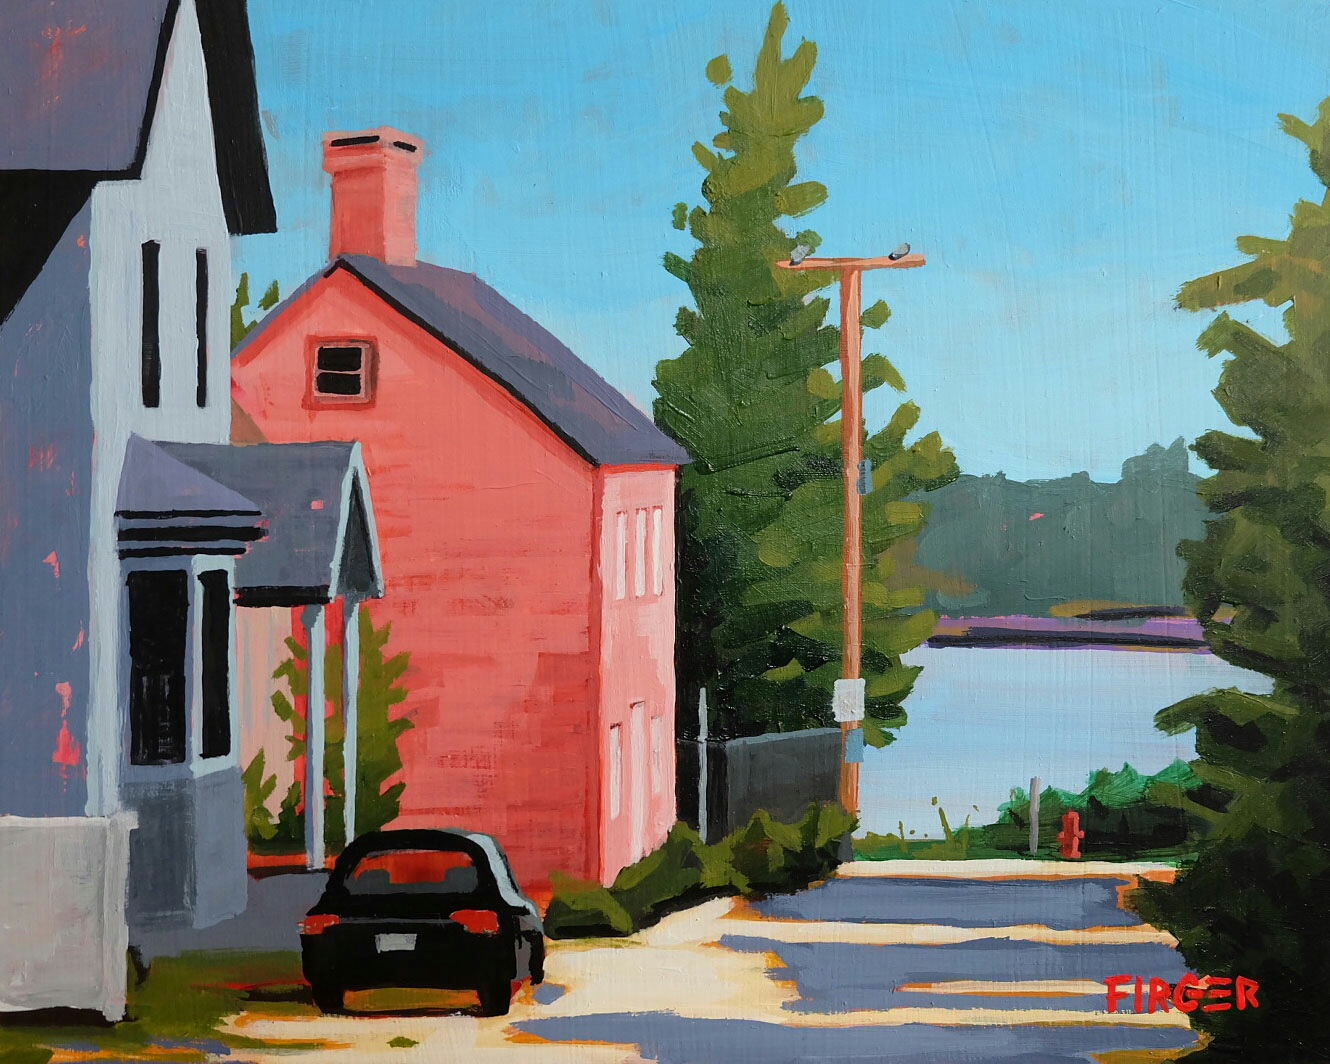 Late Summer Alley (Portsmouth) - 8 x 10, Acrylic on Panel (SOLD)